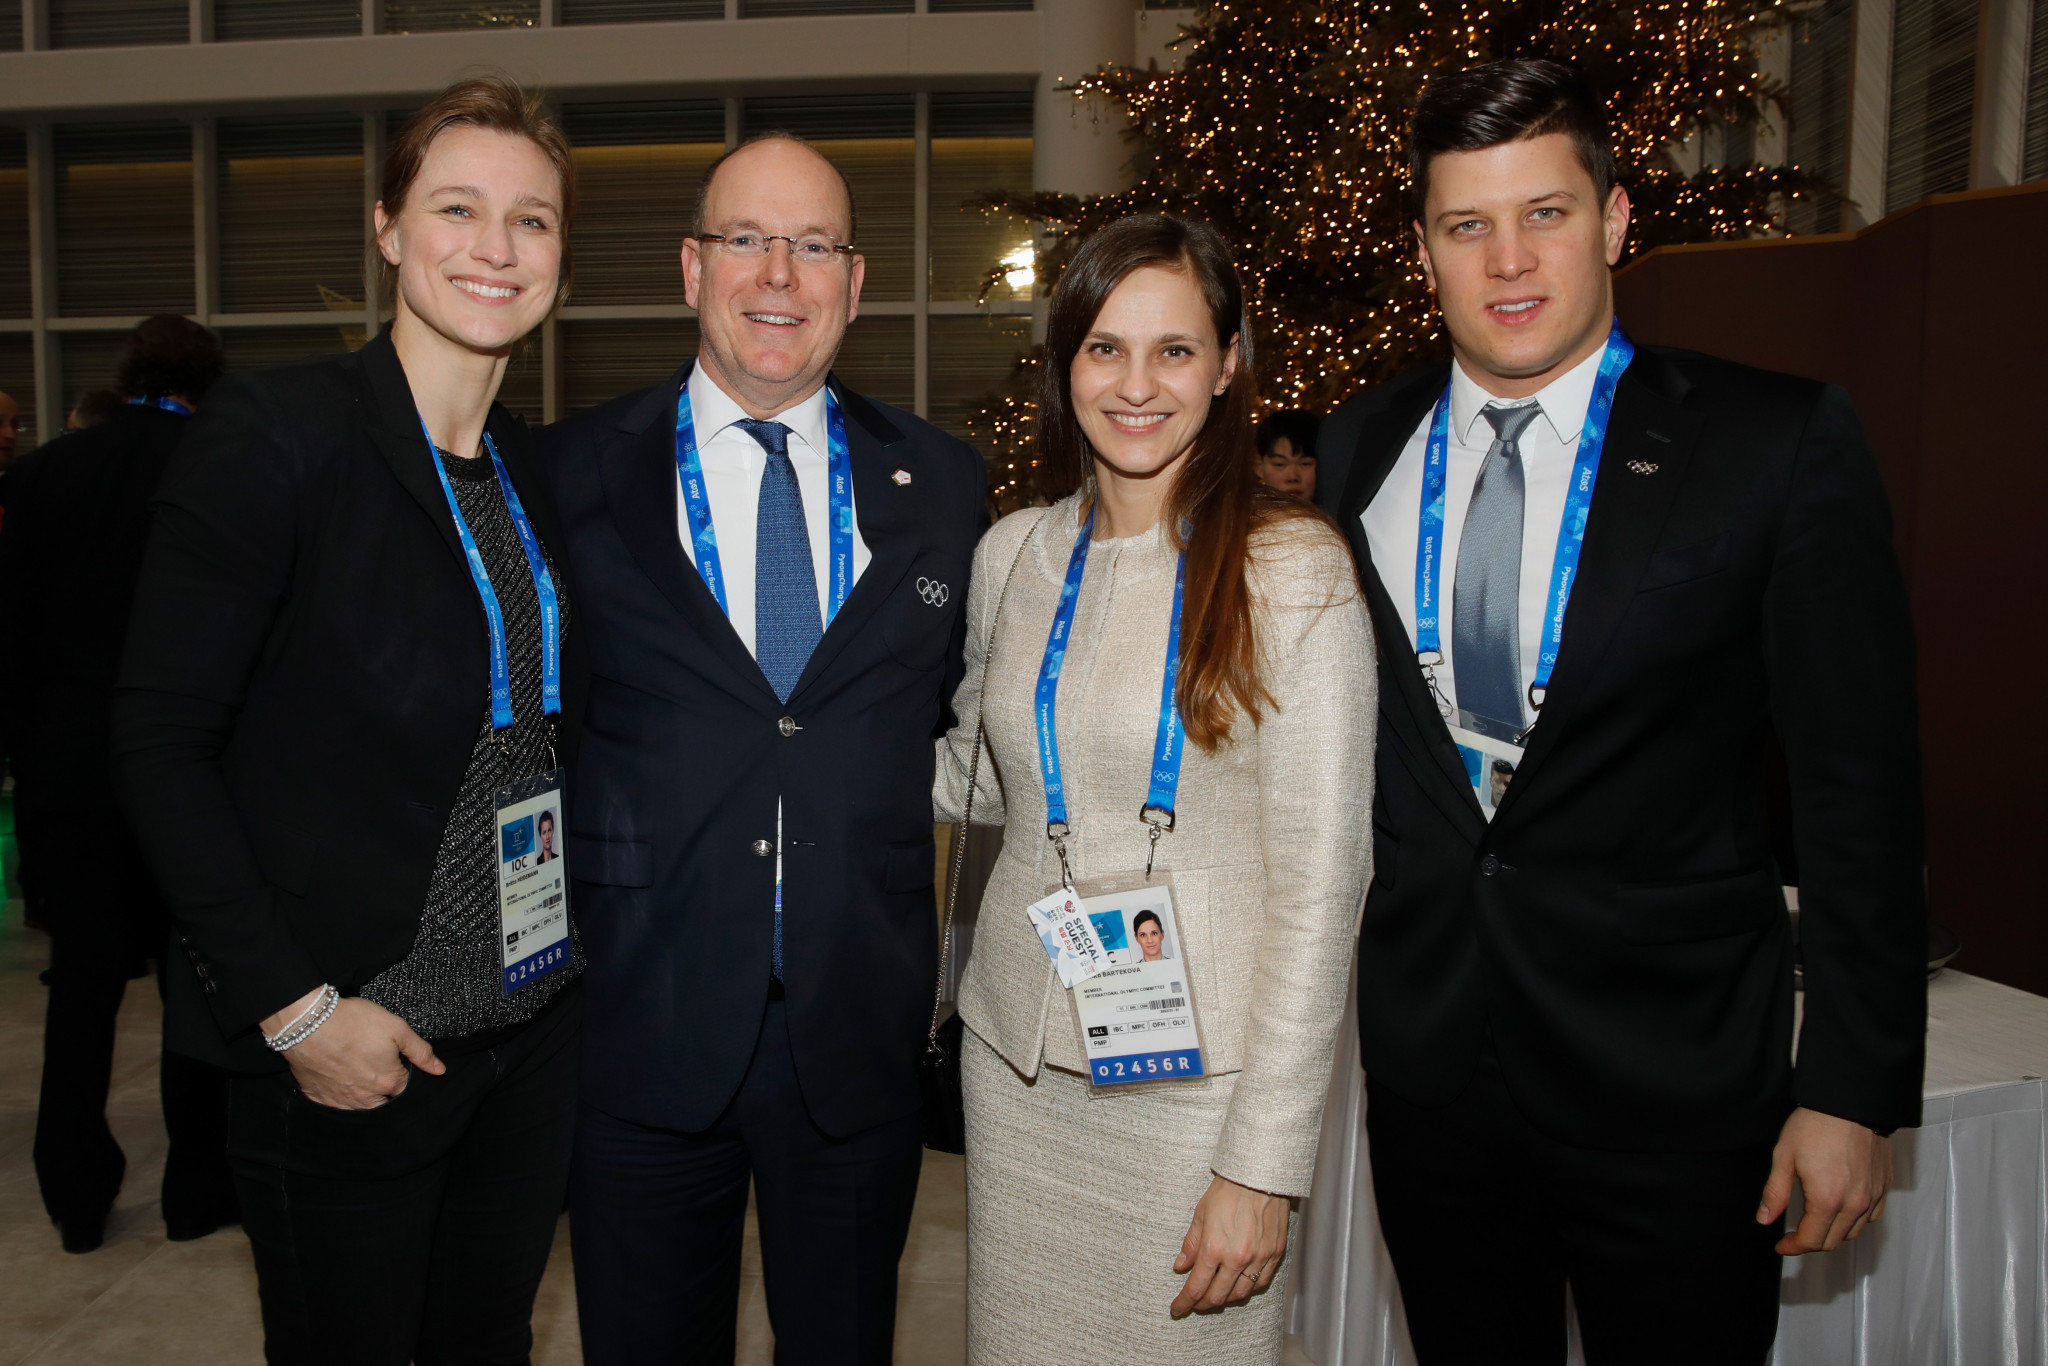 Hungarian Olympic gold medallist Dániel Gyurta, right, was elected as a member of the IOC Athletes' Commission in 2016 and has now taken up a role in the Hungarian Government ©Getty Images